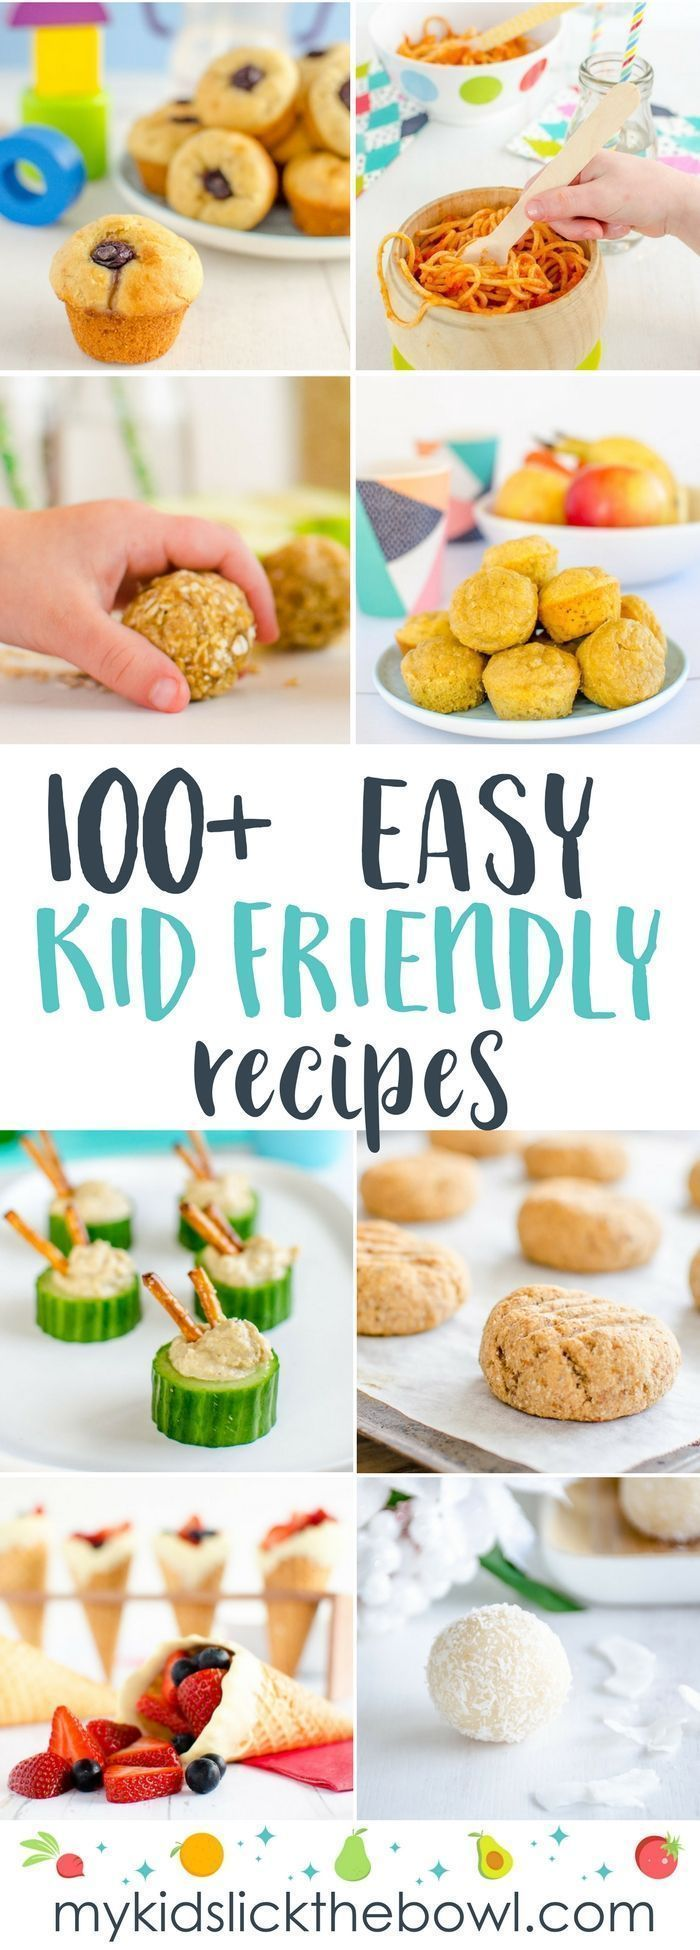 A great collection of kid-approved recipes!